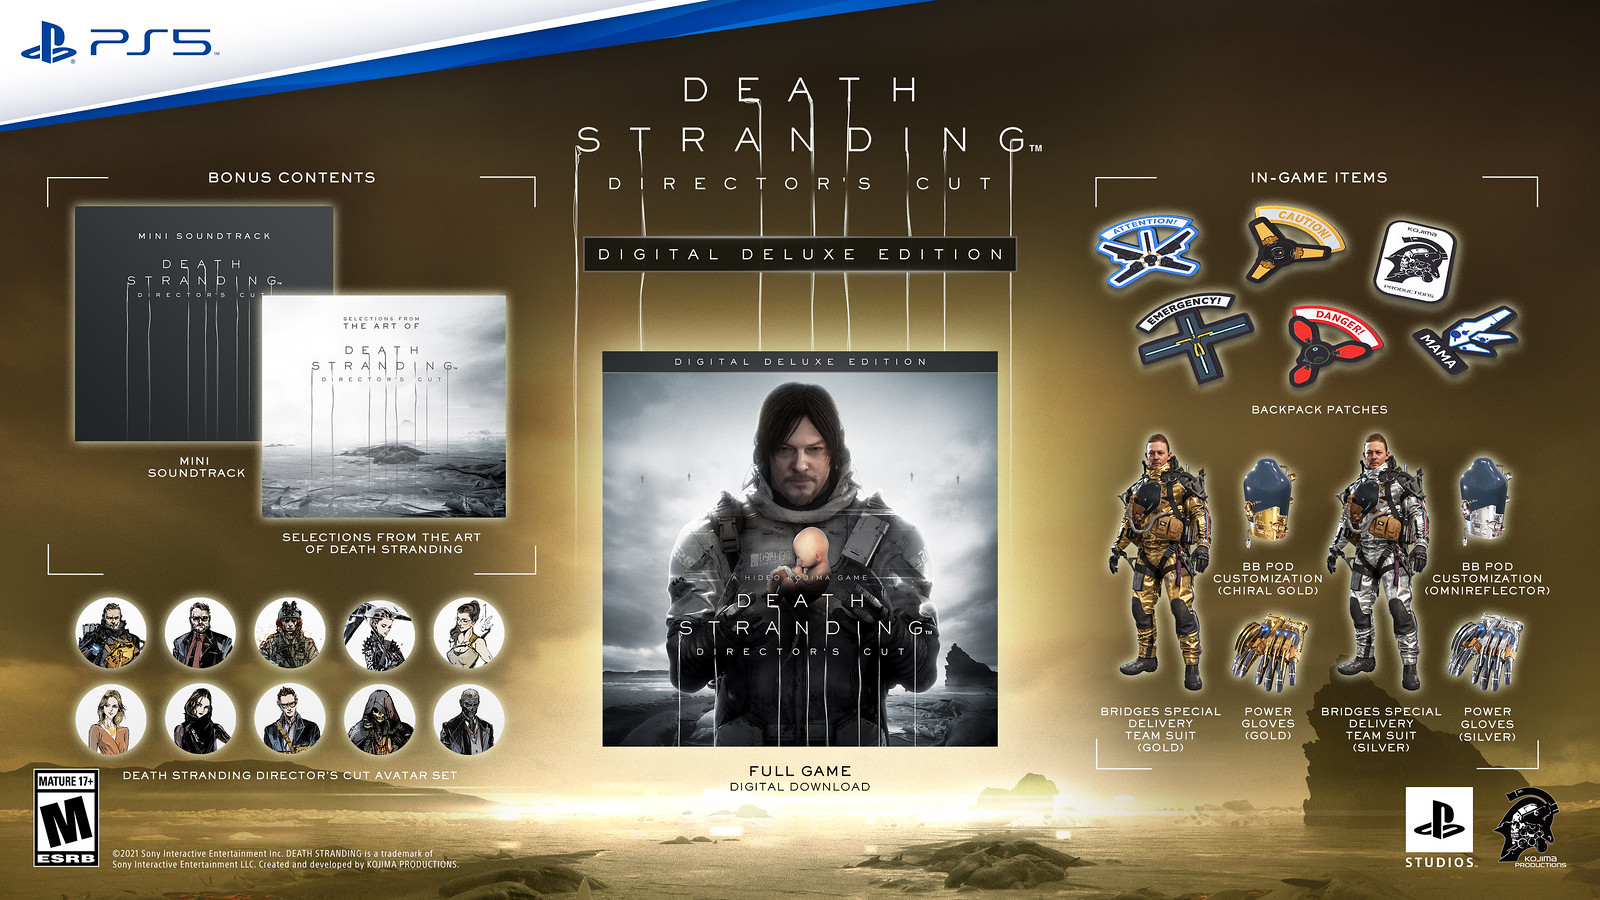 Death Stranding Director's Cut brings expanded combat and new content to PS5 in September